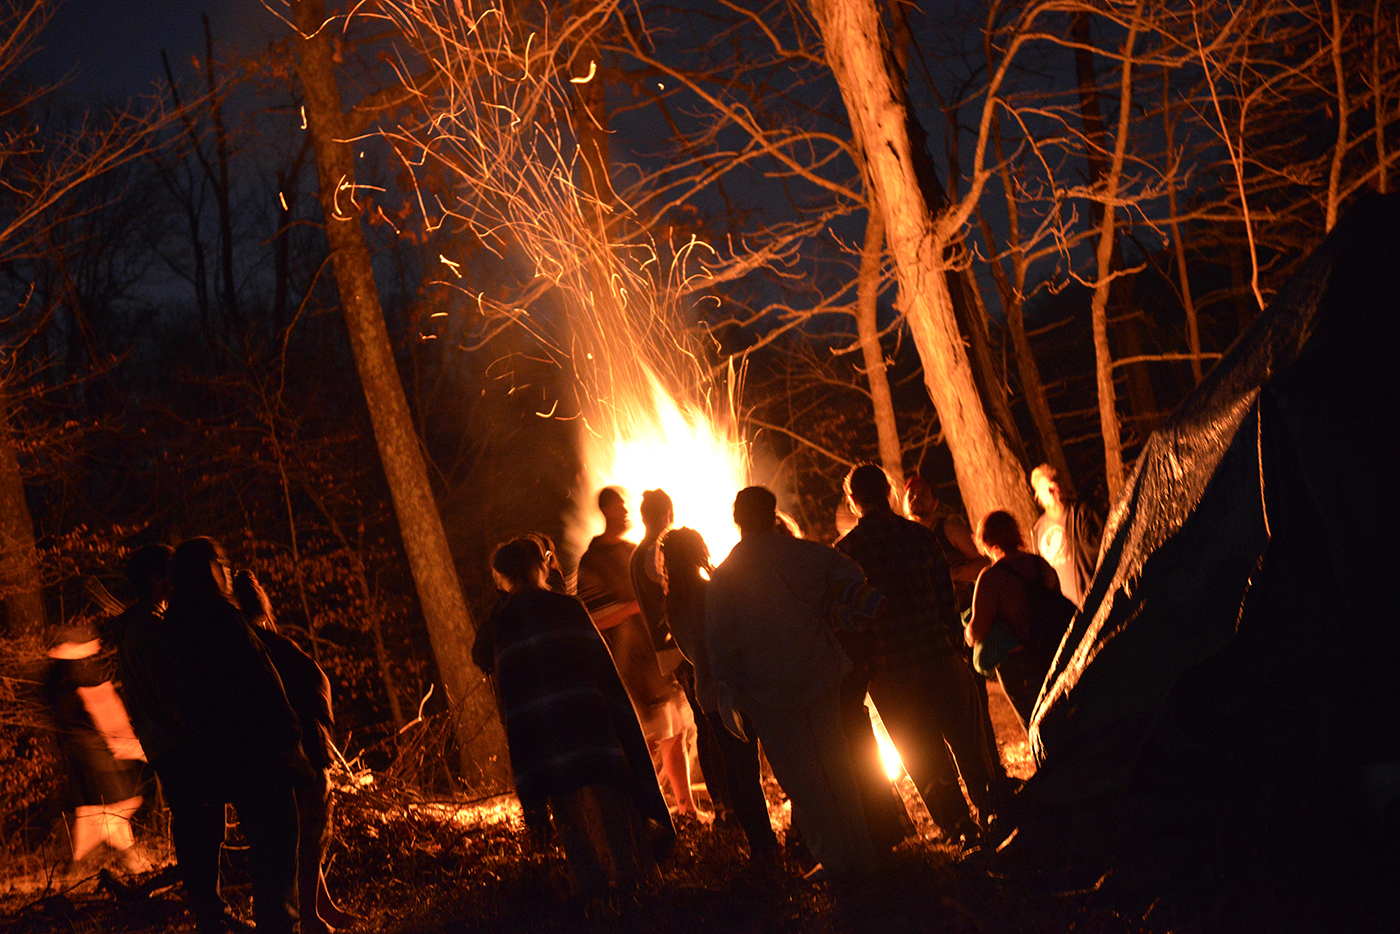 Members of the Wiccan community gather around the fire before participating in the reawakening plunge into Lake Gaia, named after the mother of life. They lit a fire to keep warm after going into the lake and sang songs to celebrate Imbolc. The plunge is a spiritual experience that represents rebirth into the spring.